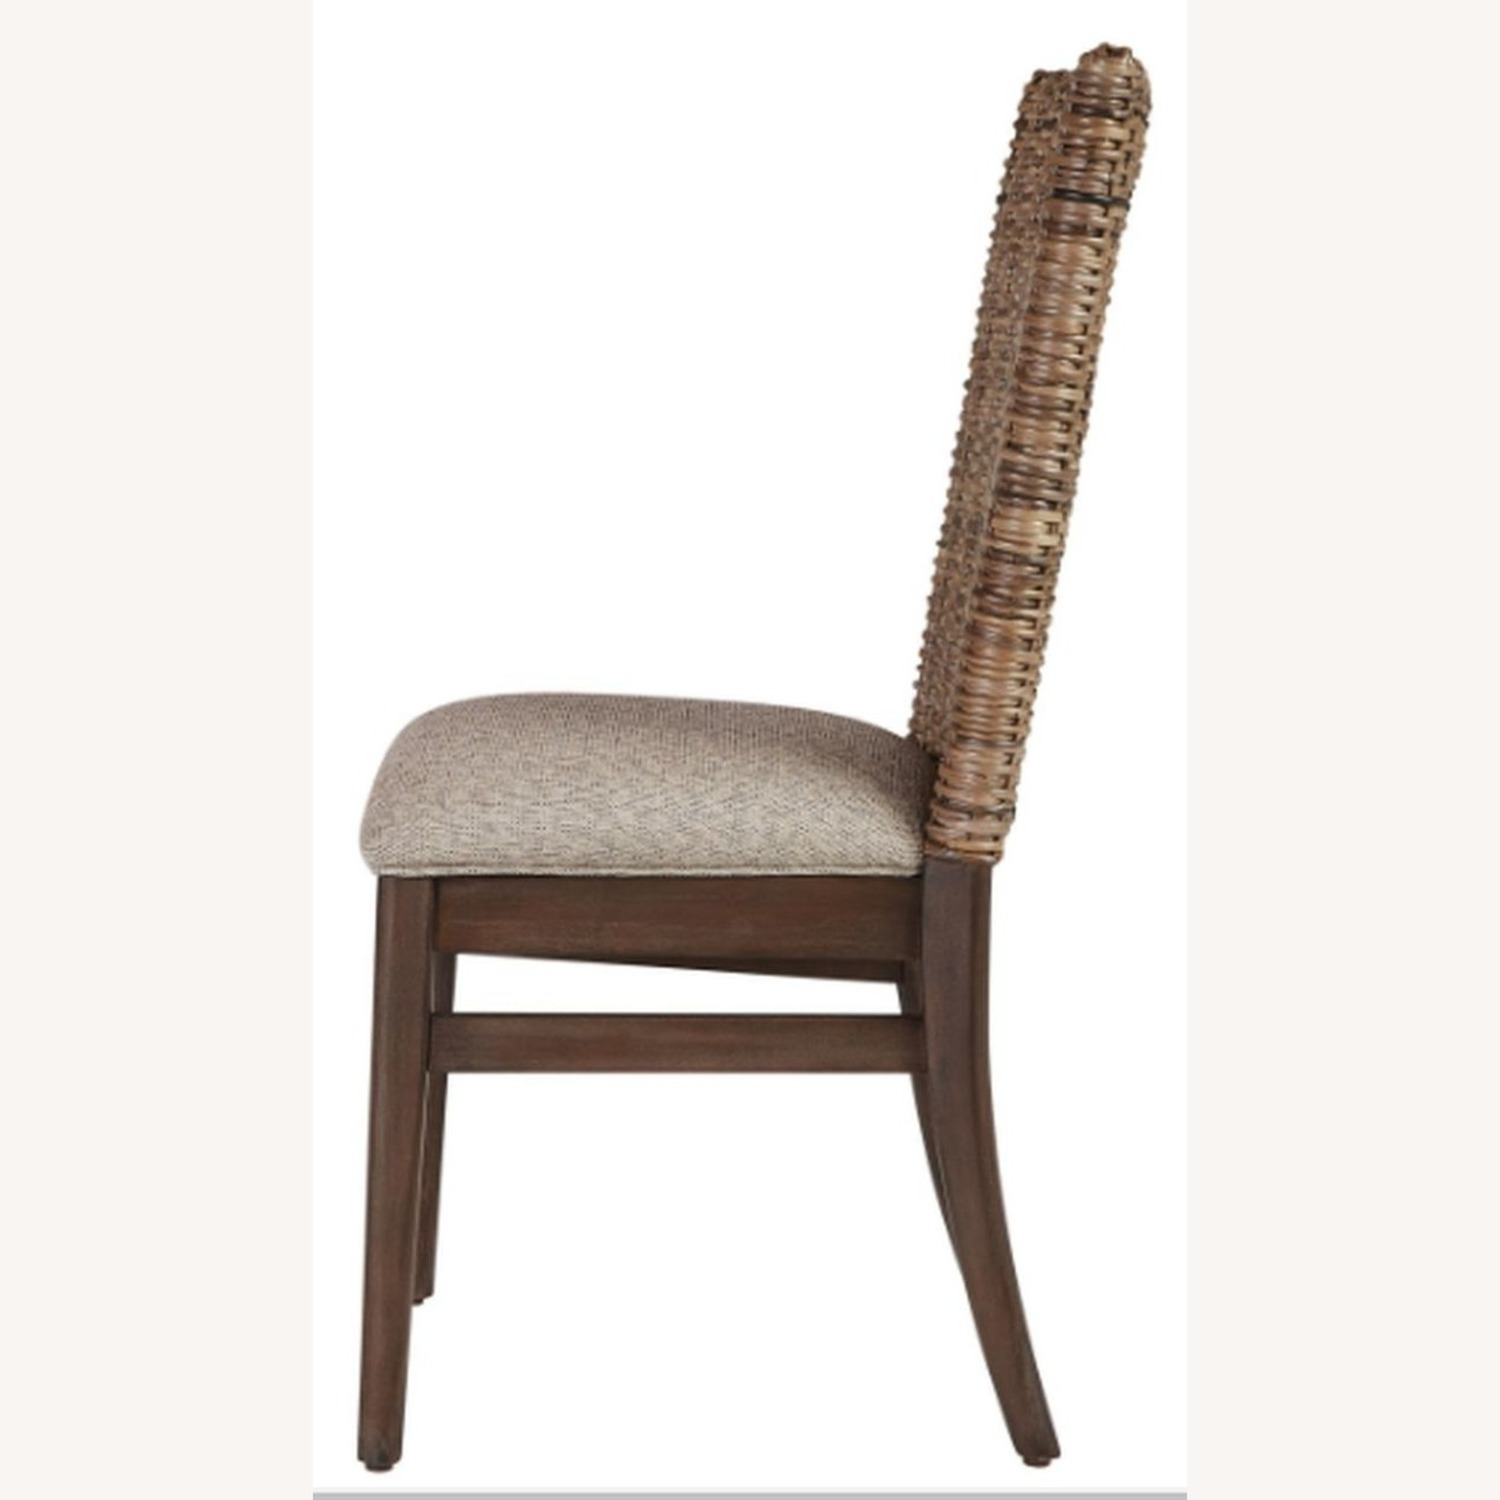 Modern Dining Chair Upholstered In Light Taupe - image-2